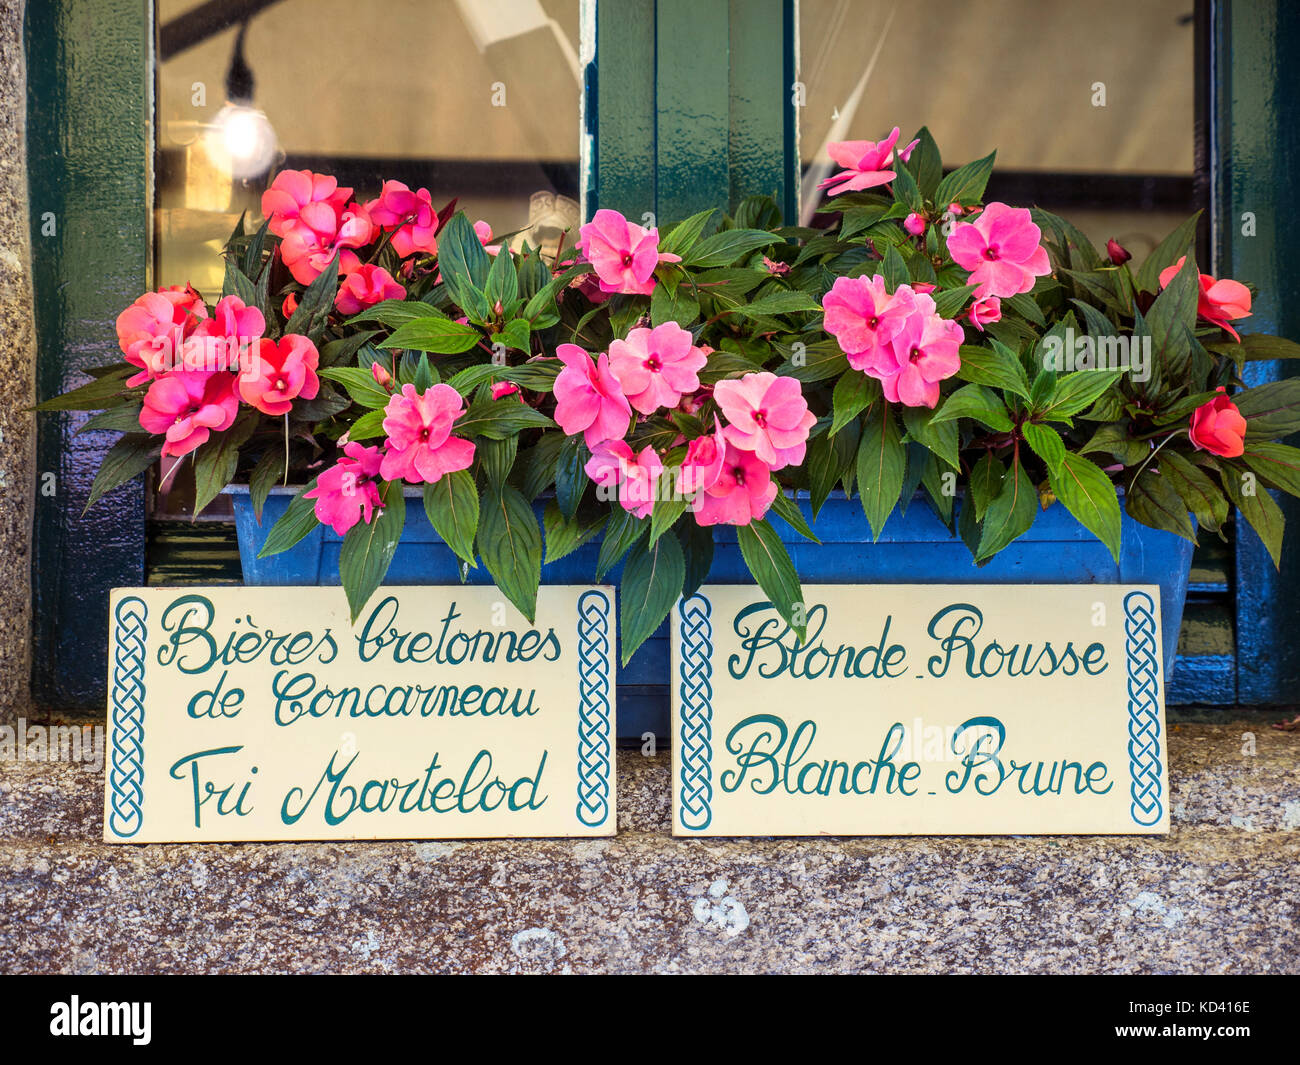 Floral window box signs outside a typical old French bar, in old quarter Concarneau promoting local Brittany Bieres - Stock Image